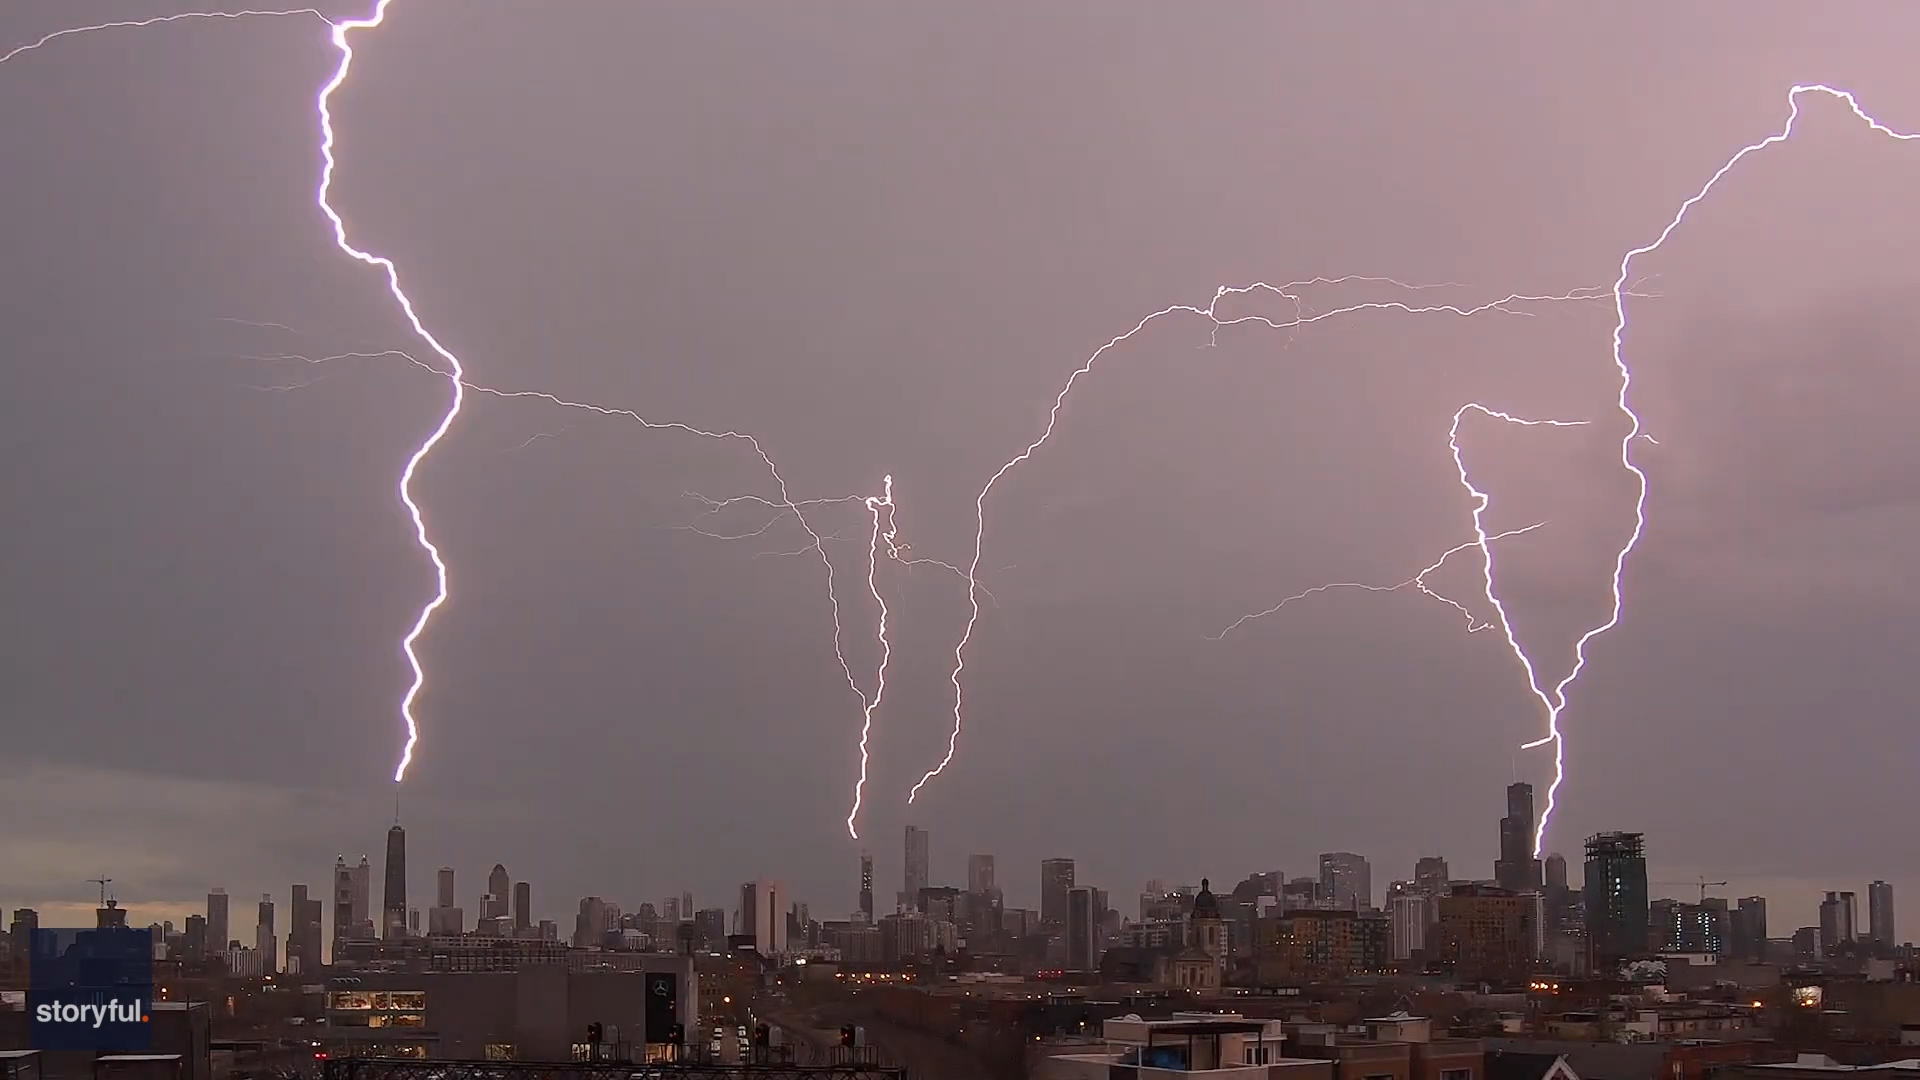 Lightning zapped four of Chicago's tallest skyscrapers at once Monday. Here's how.